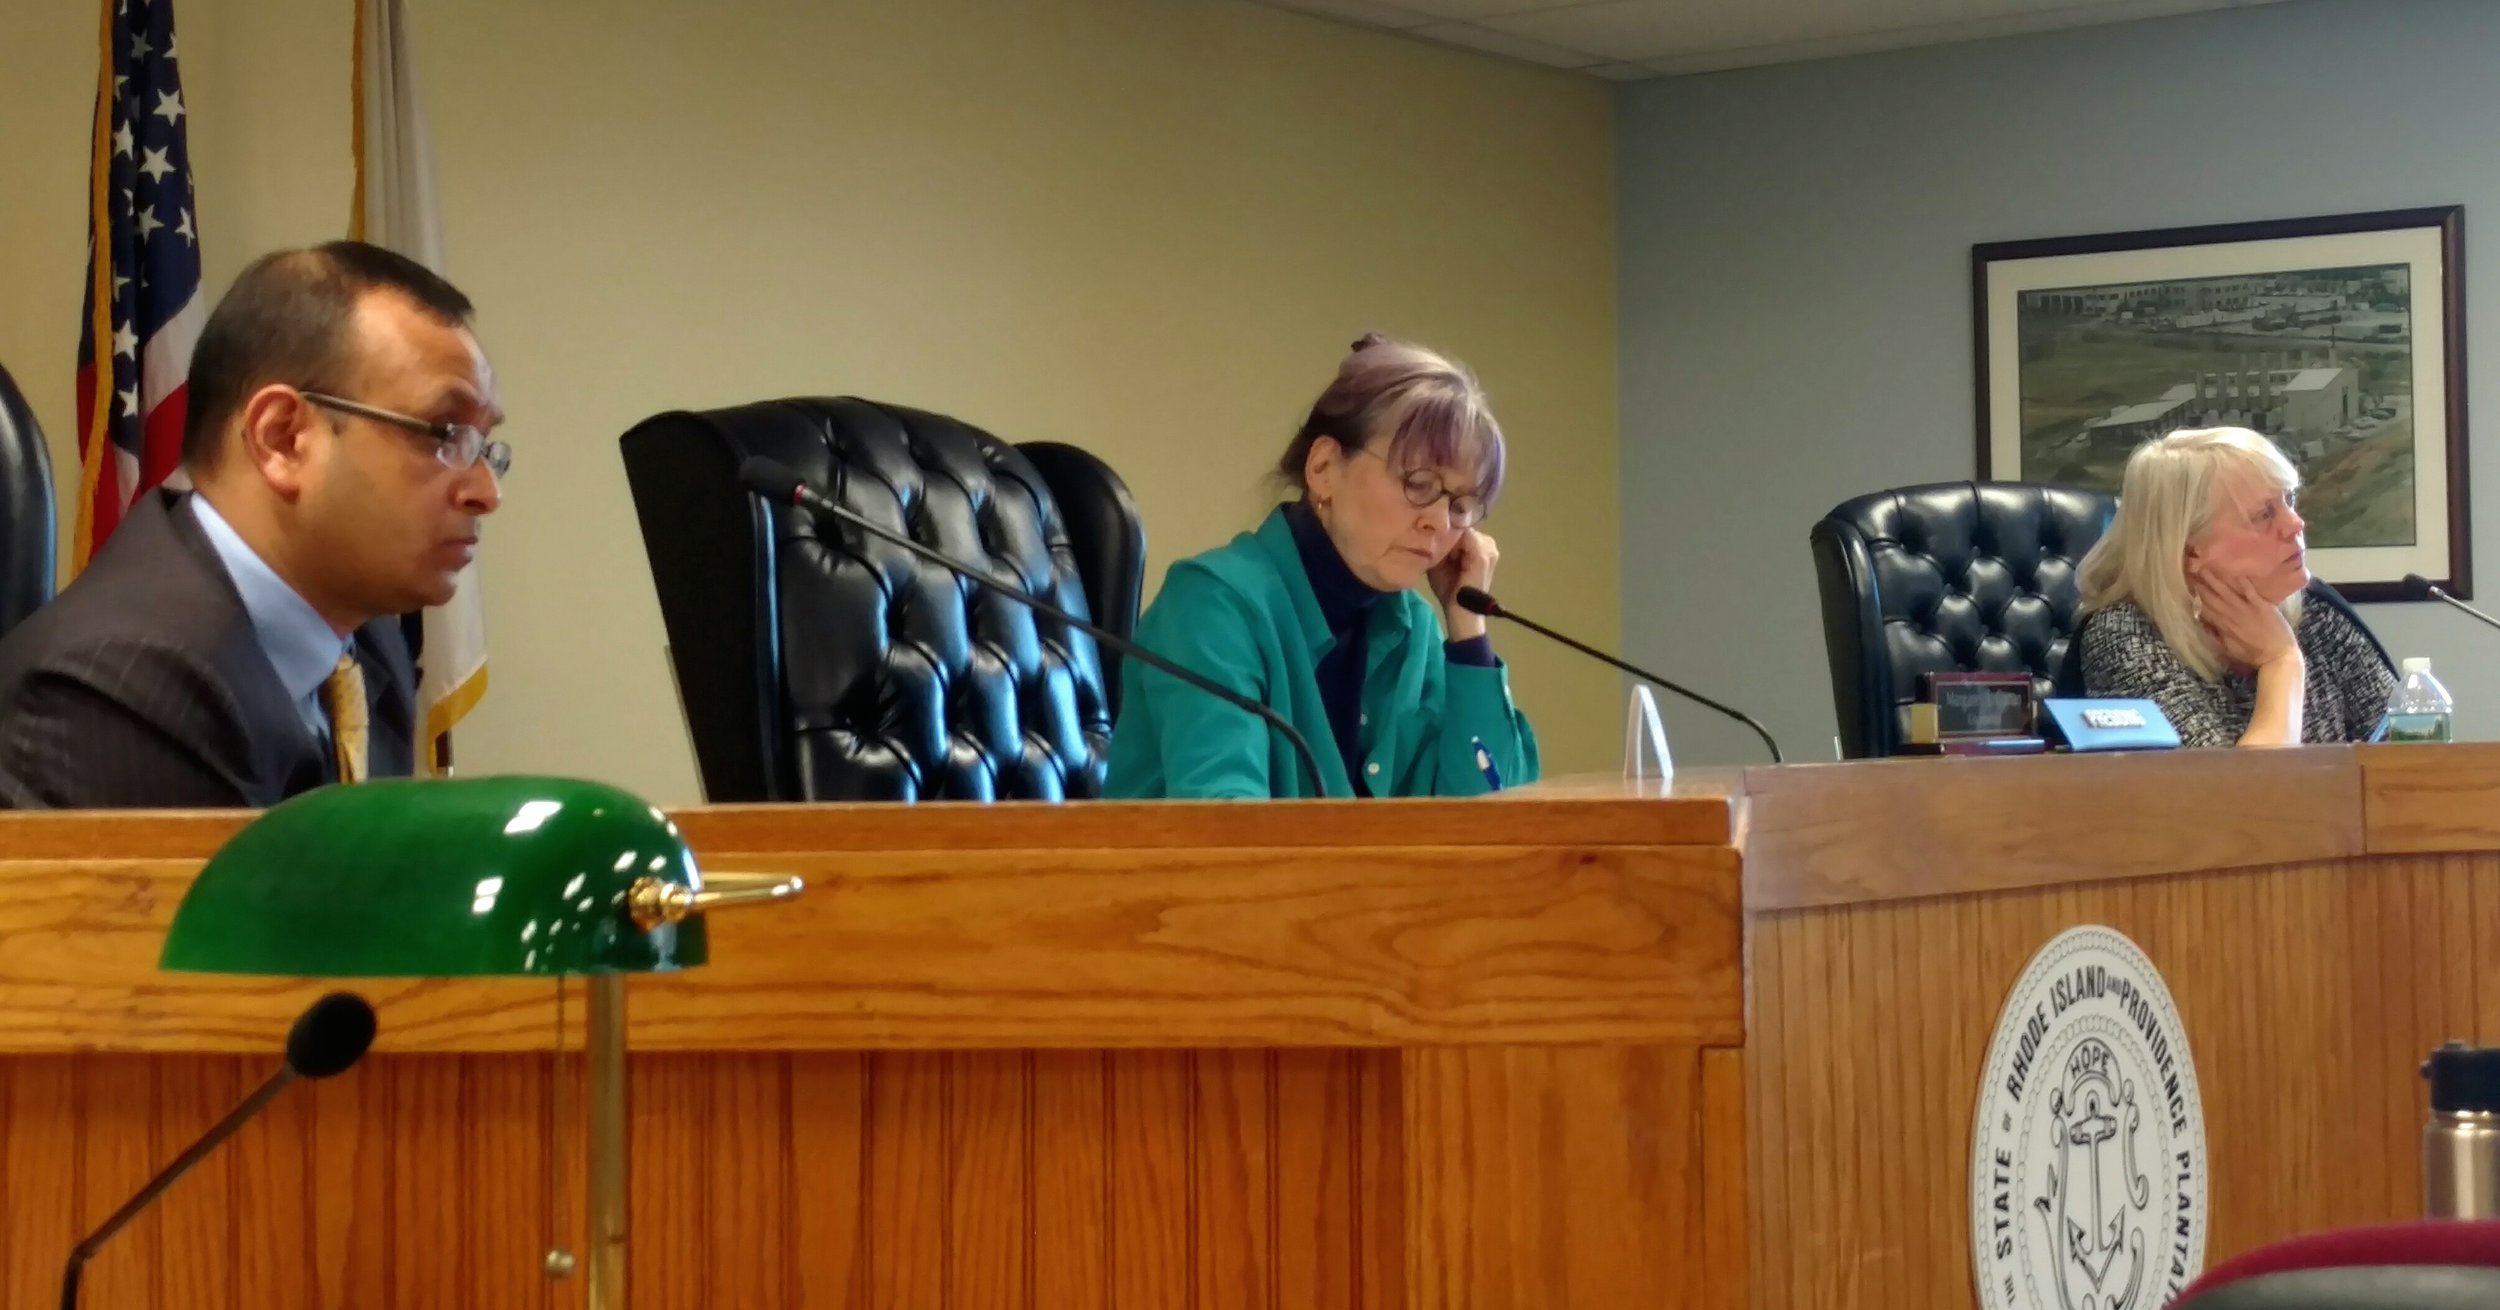 The Rhode Island Energy Facility Siting Board was dismissive of motions to reject the power plant proposed for Burrillville. (Tim Faulkner/ecoRI News photos)